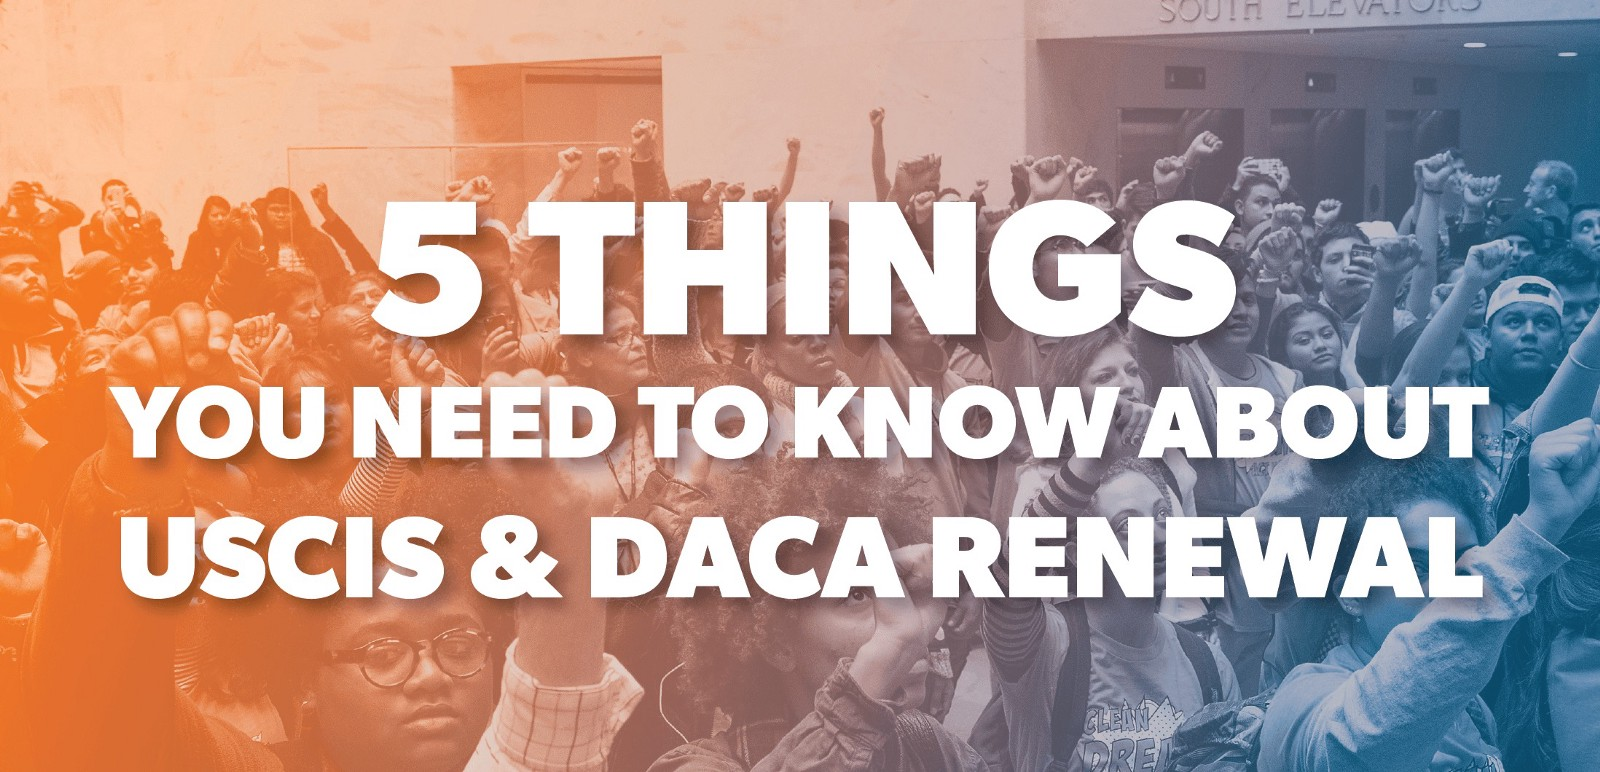 5 Things You Need To Know About Uscis Amp Daca Renewal